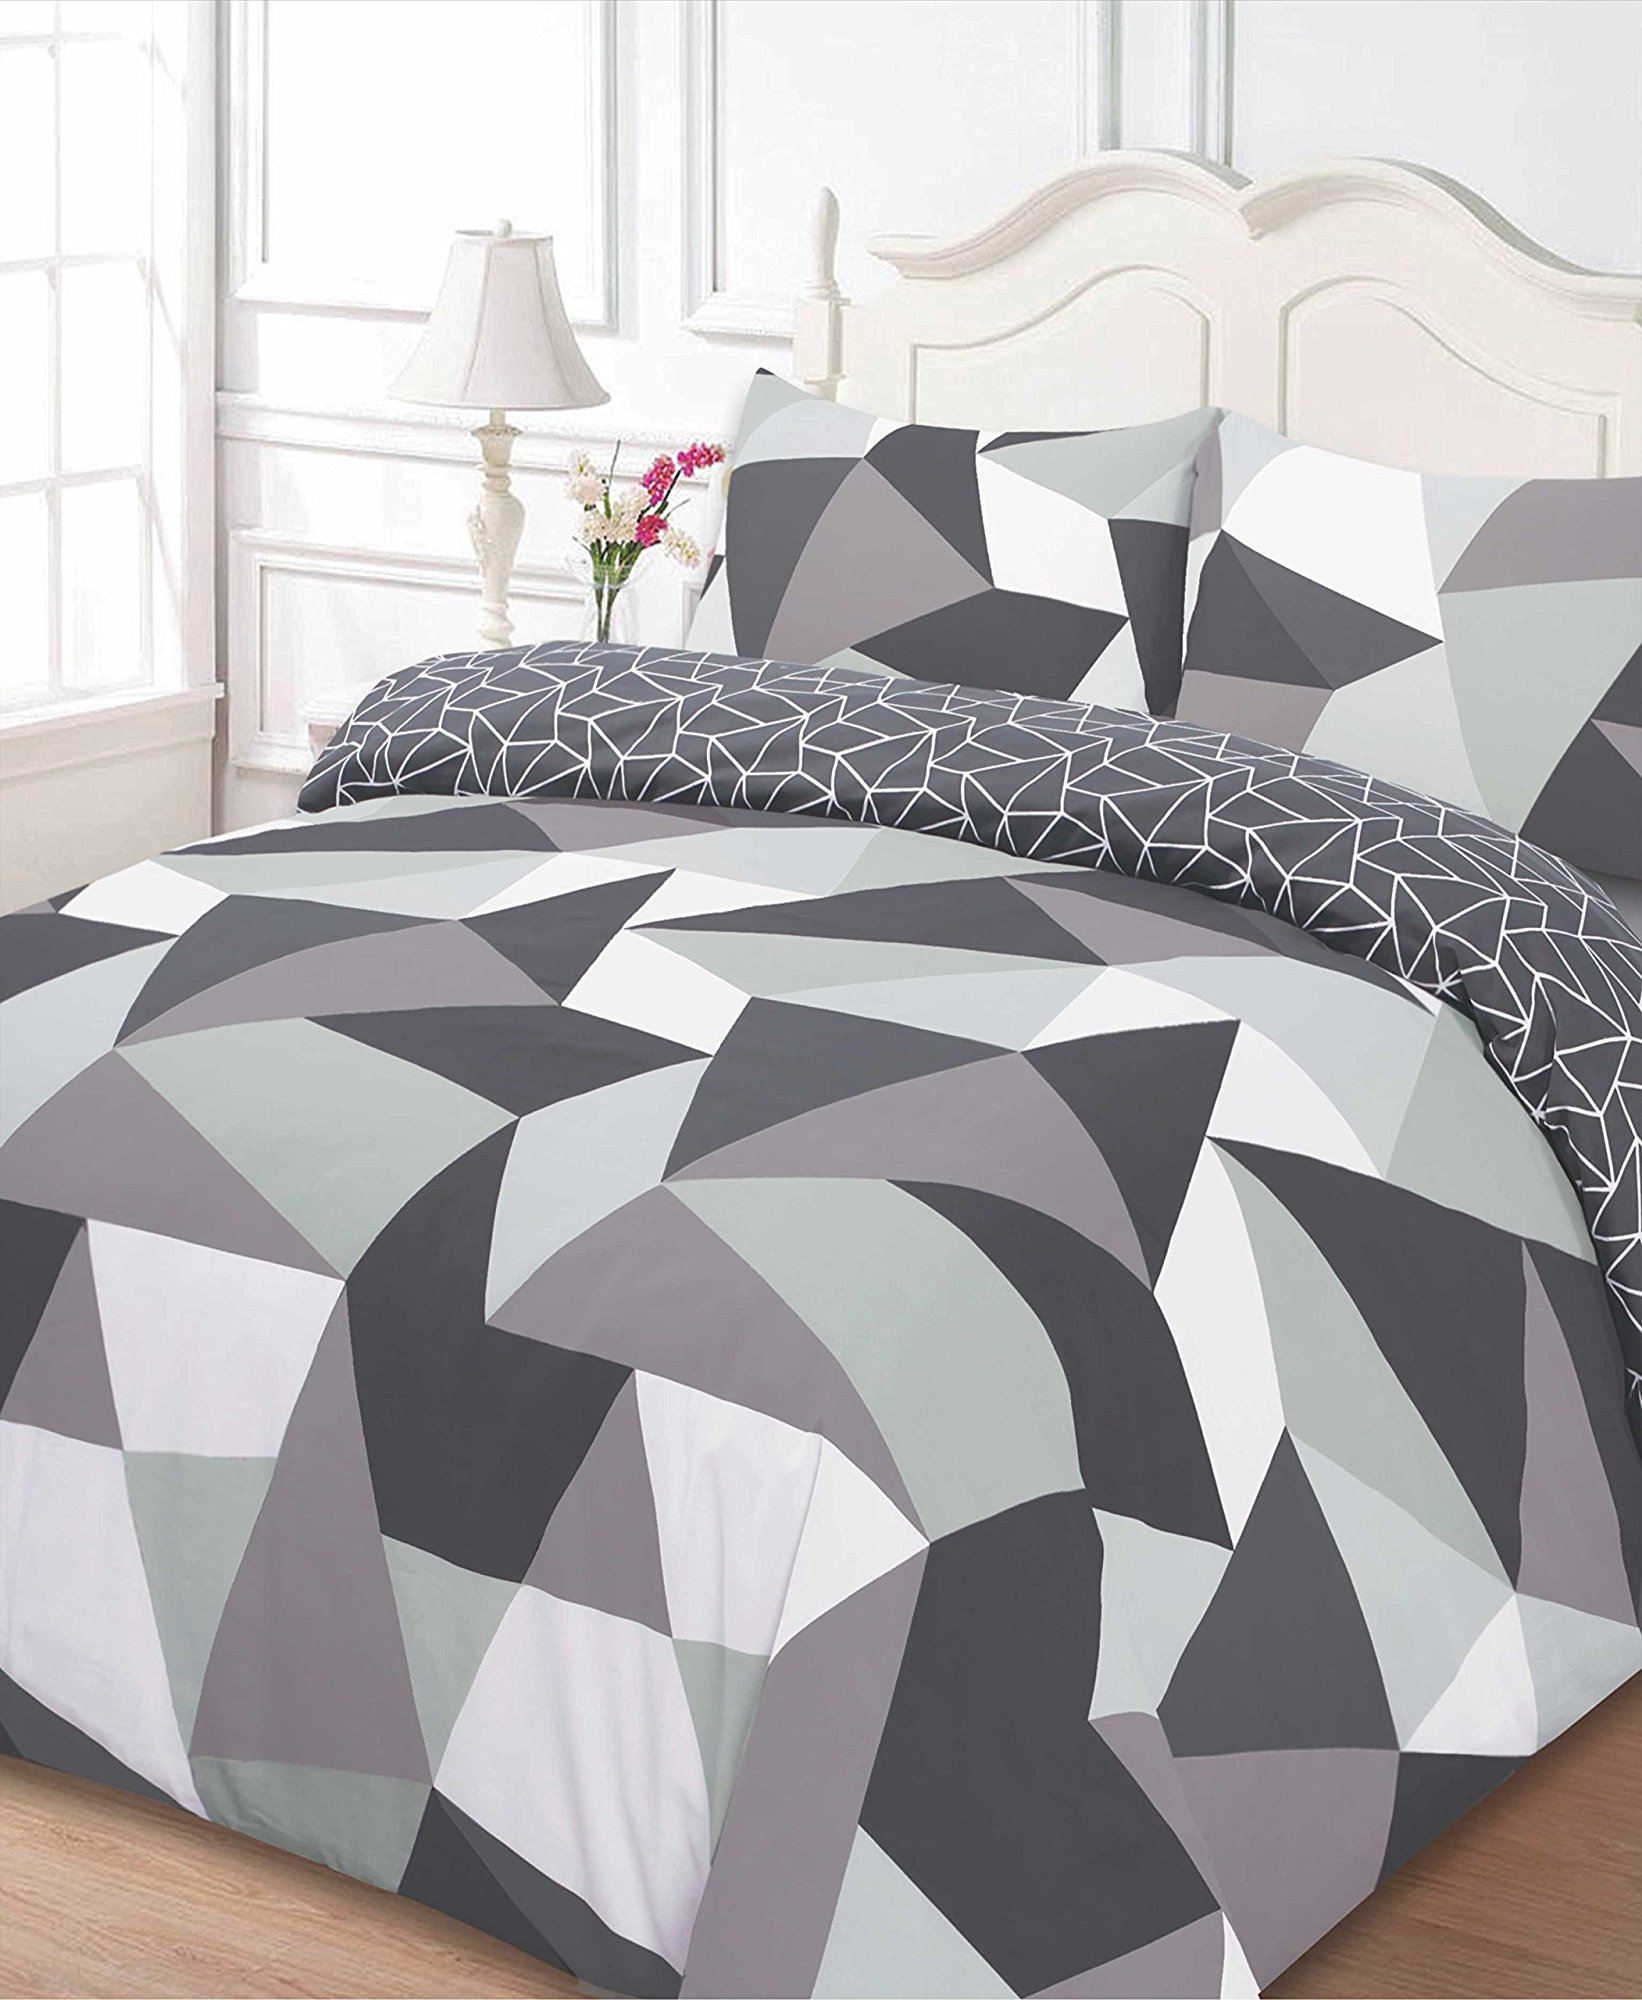 135 Size Quilt King Tog